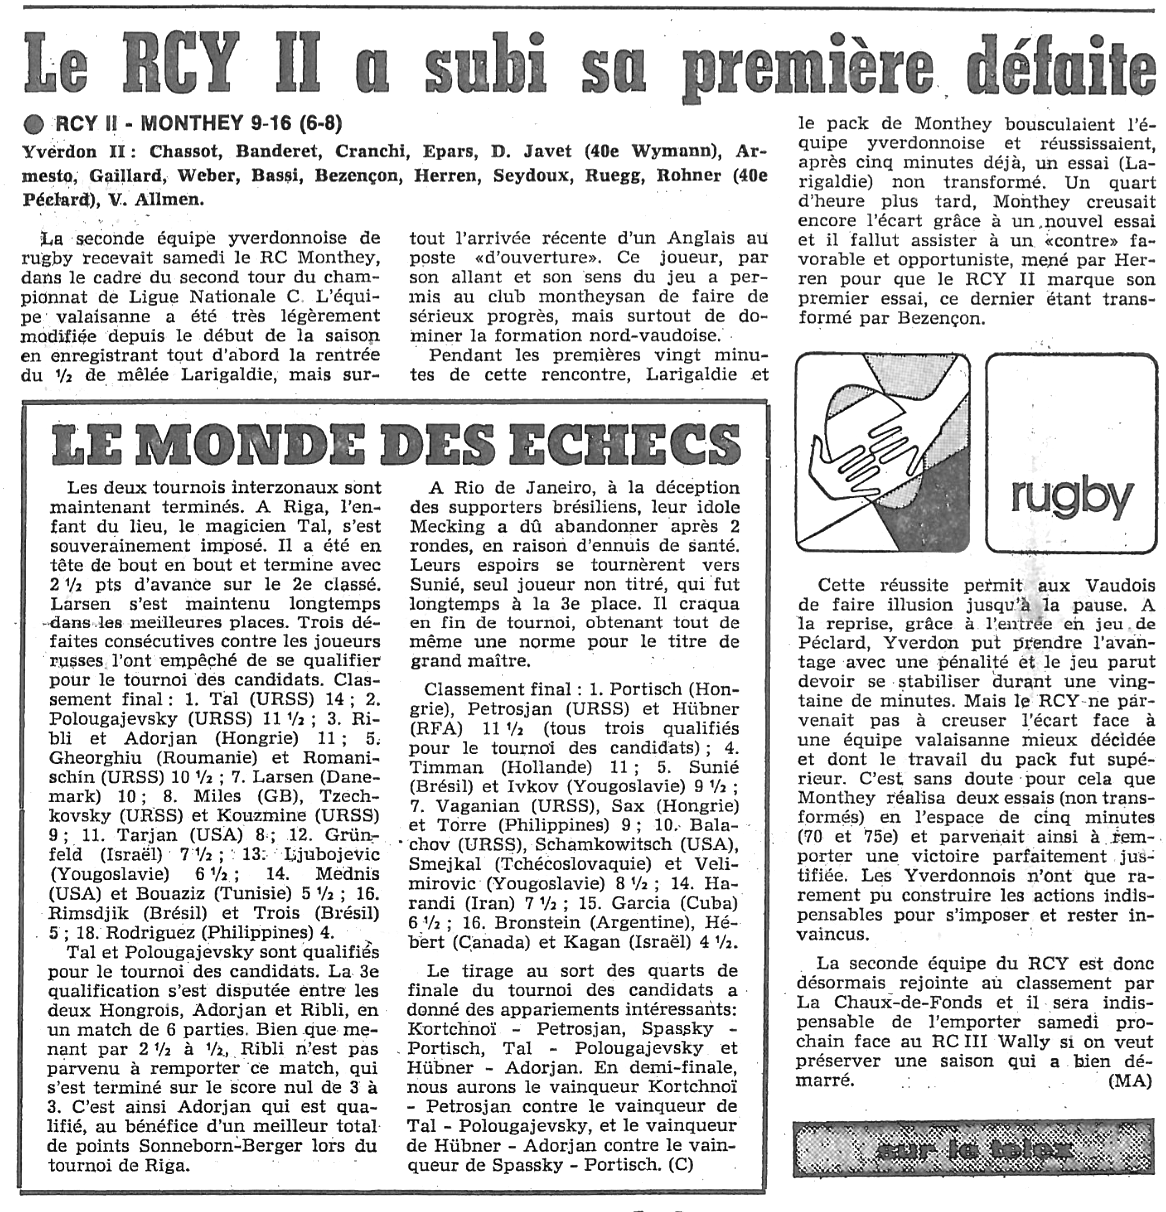 1979.11.28 RCY 2 - RC MONTHEY